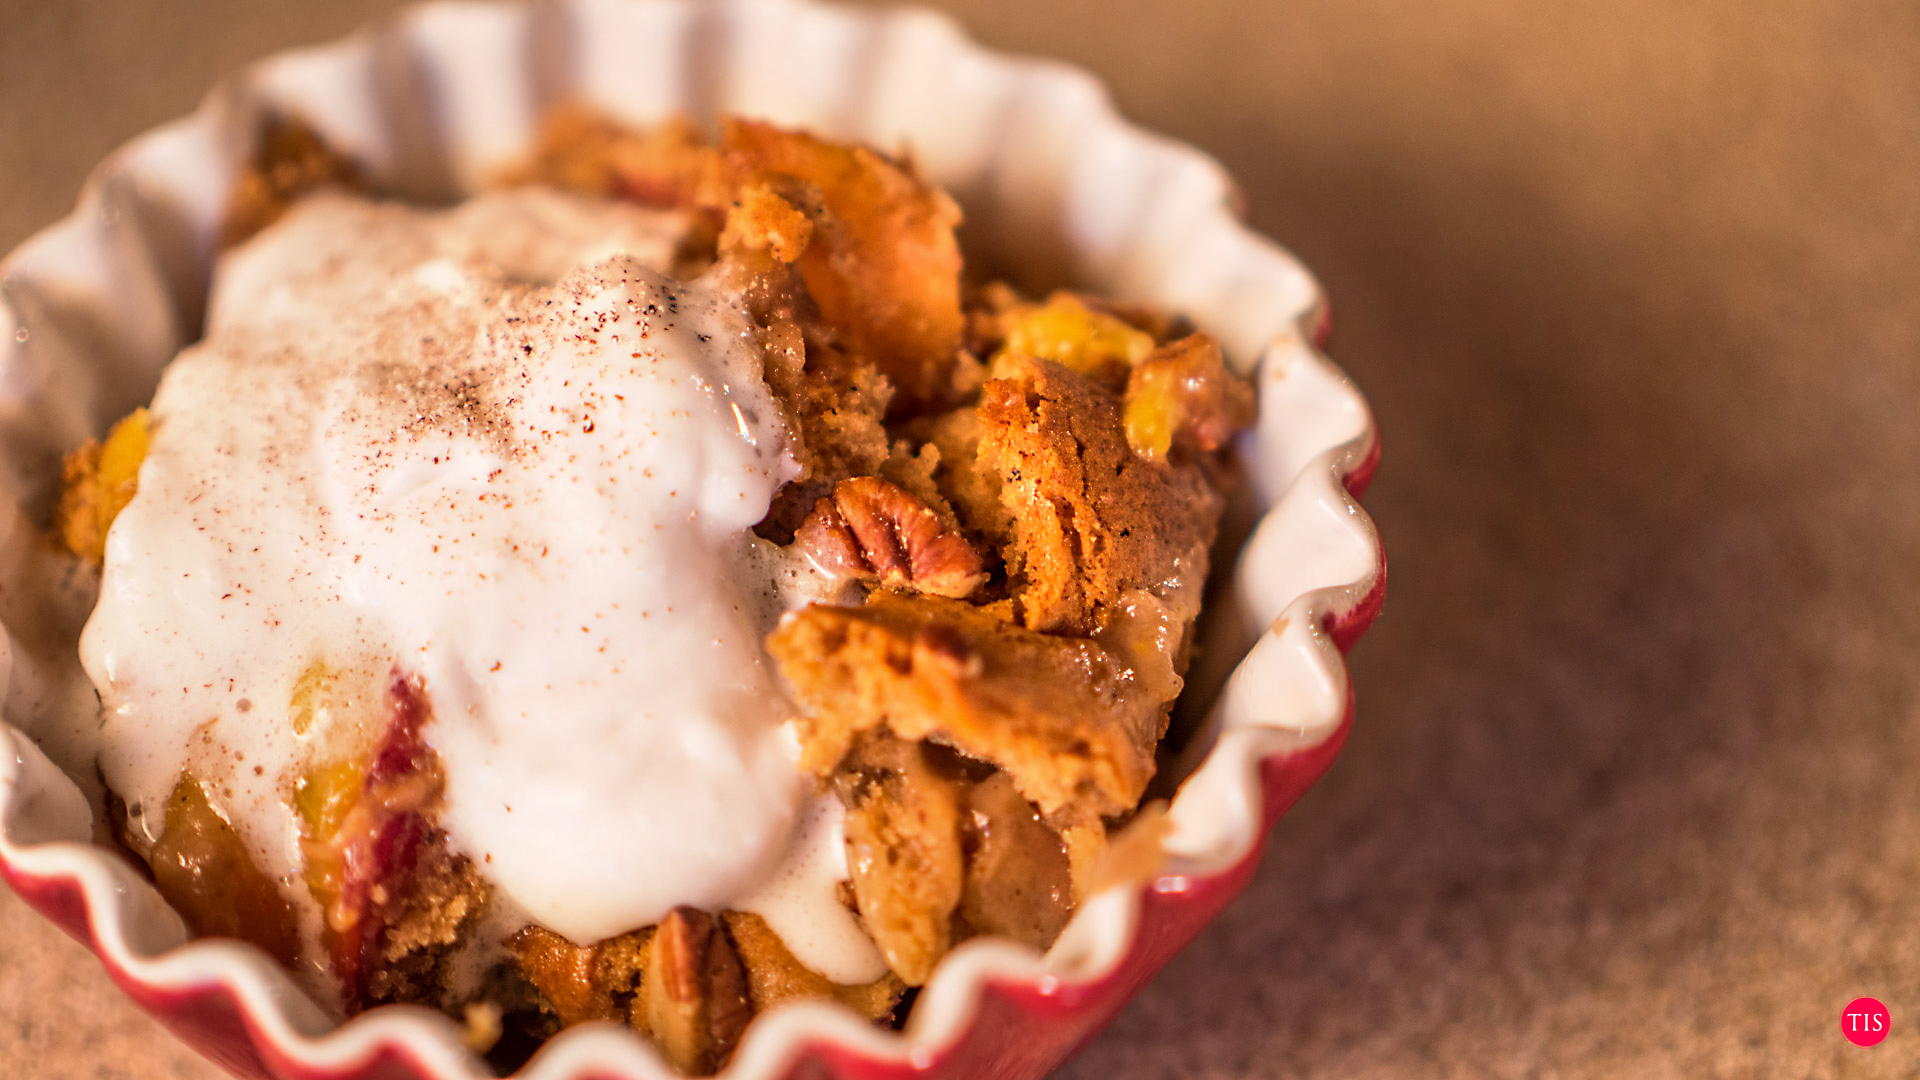 Jennifer Maring's Spiced Pecan Peach Cobbler recipe with coconut cream on top